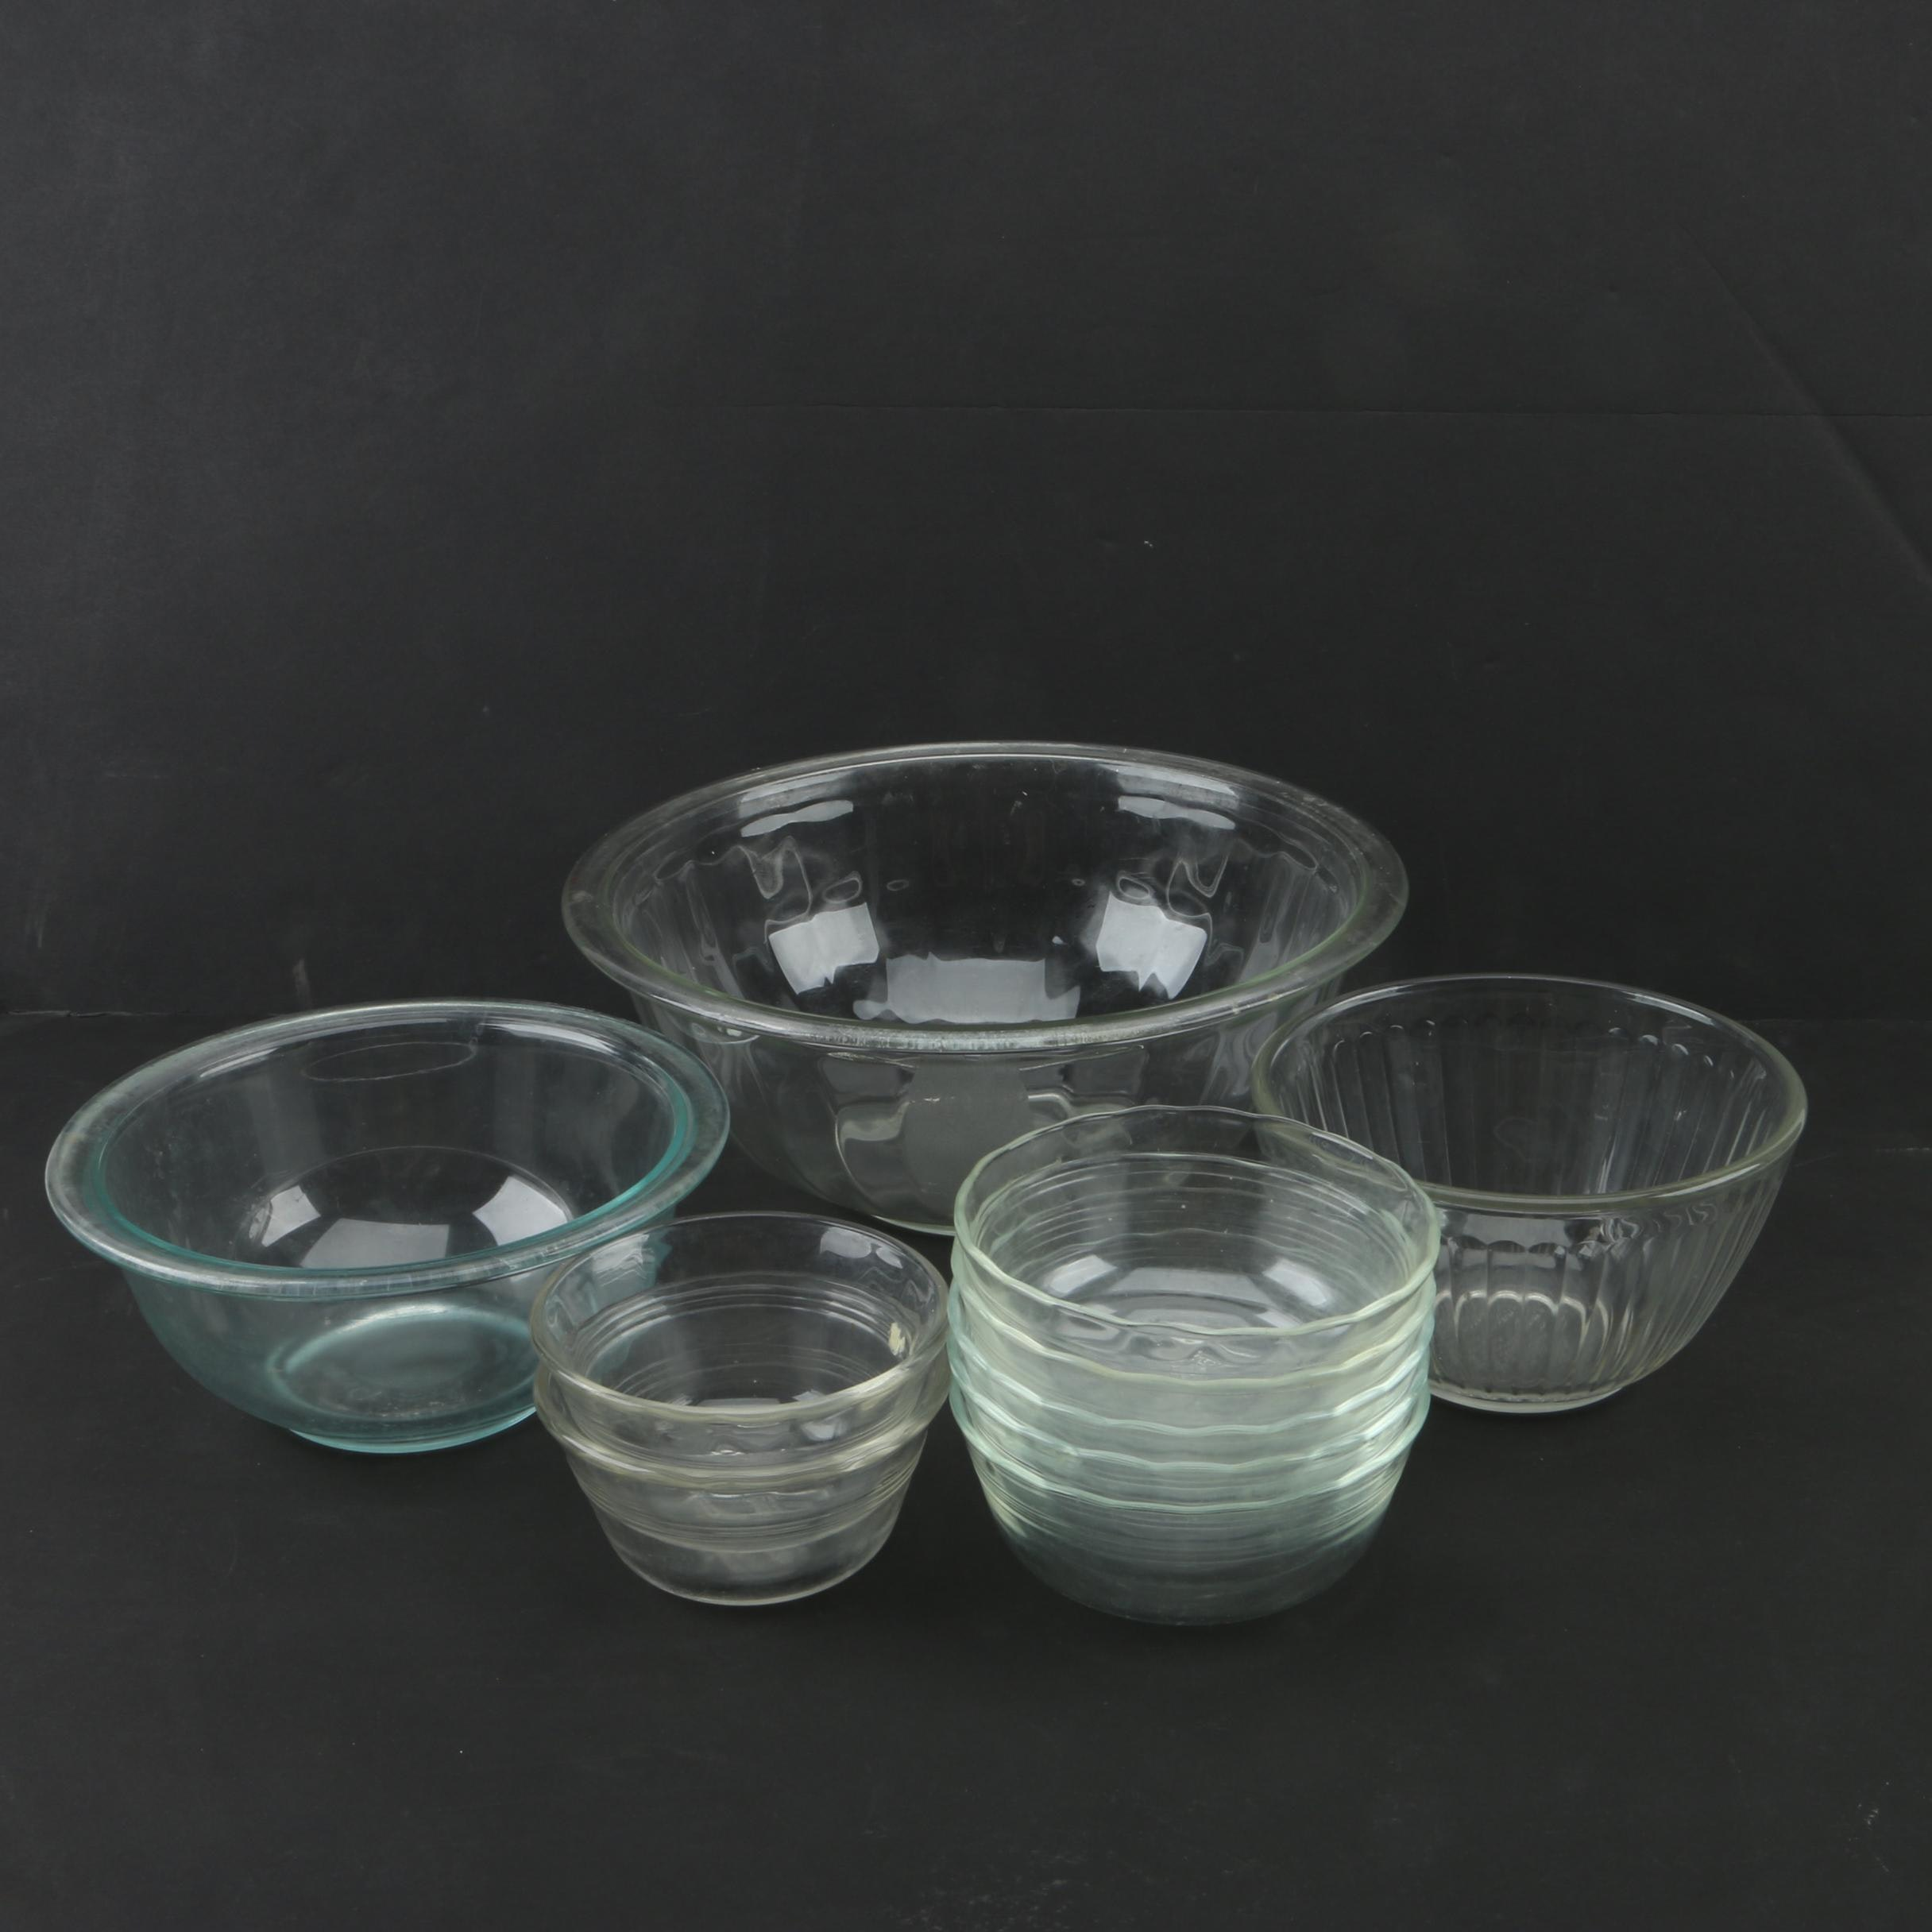 Pyrex Glass Mixing Bowls, Ramekins and Tableware